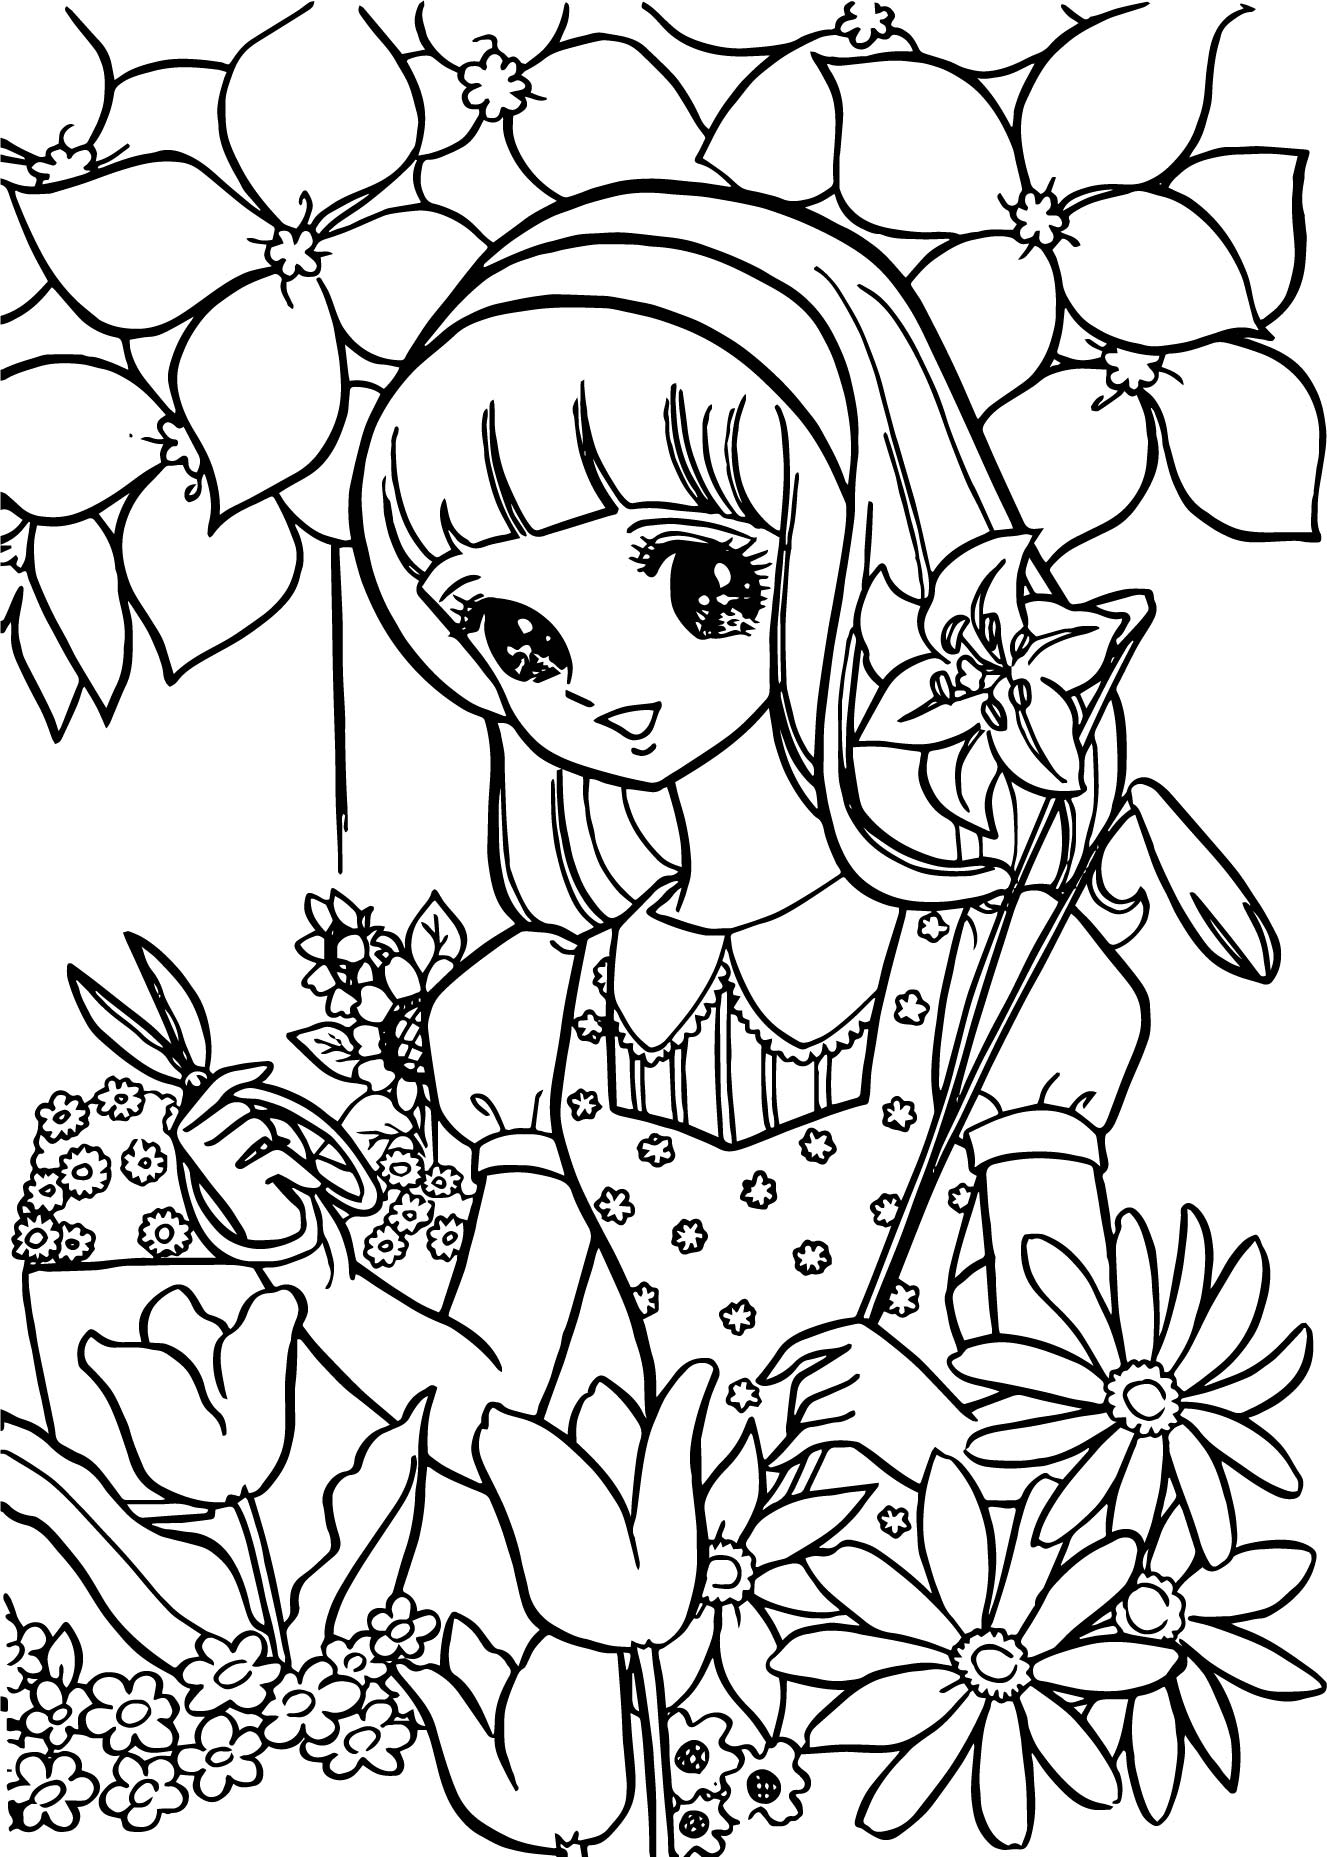 Disney thanksgiving coloring pages diannedonnelly com for I love lucy coloring pages